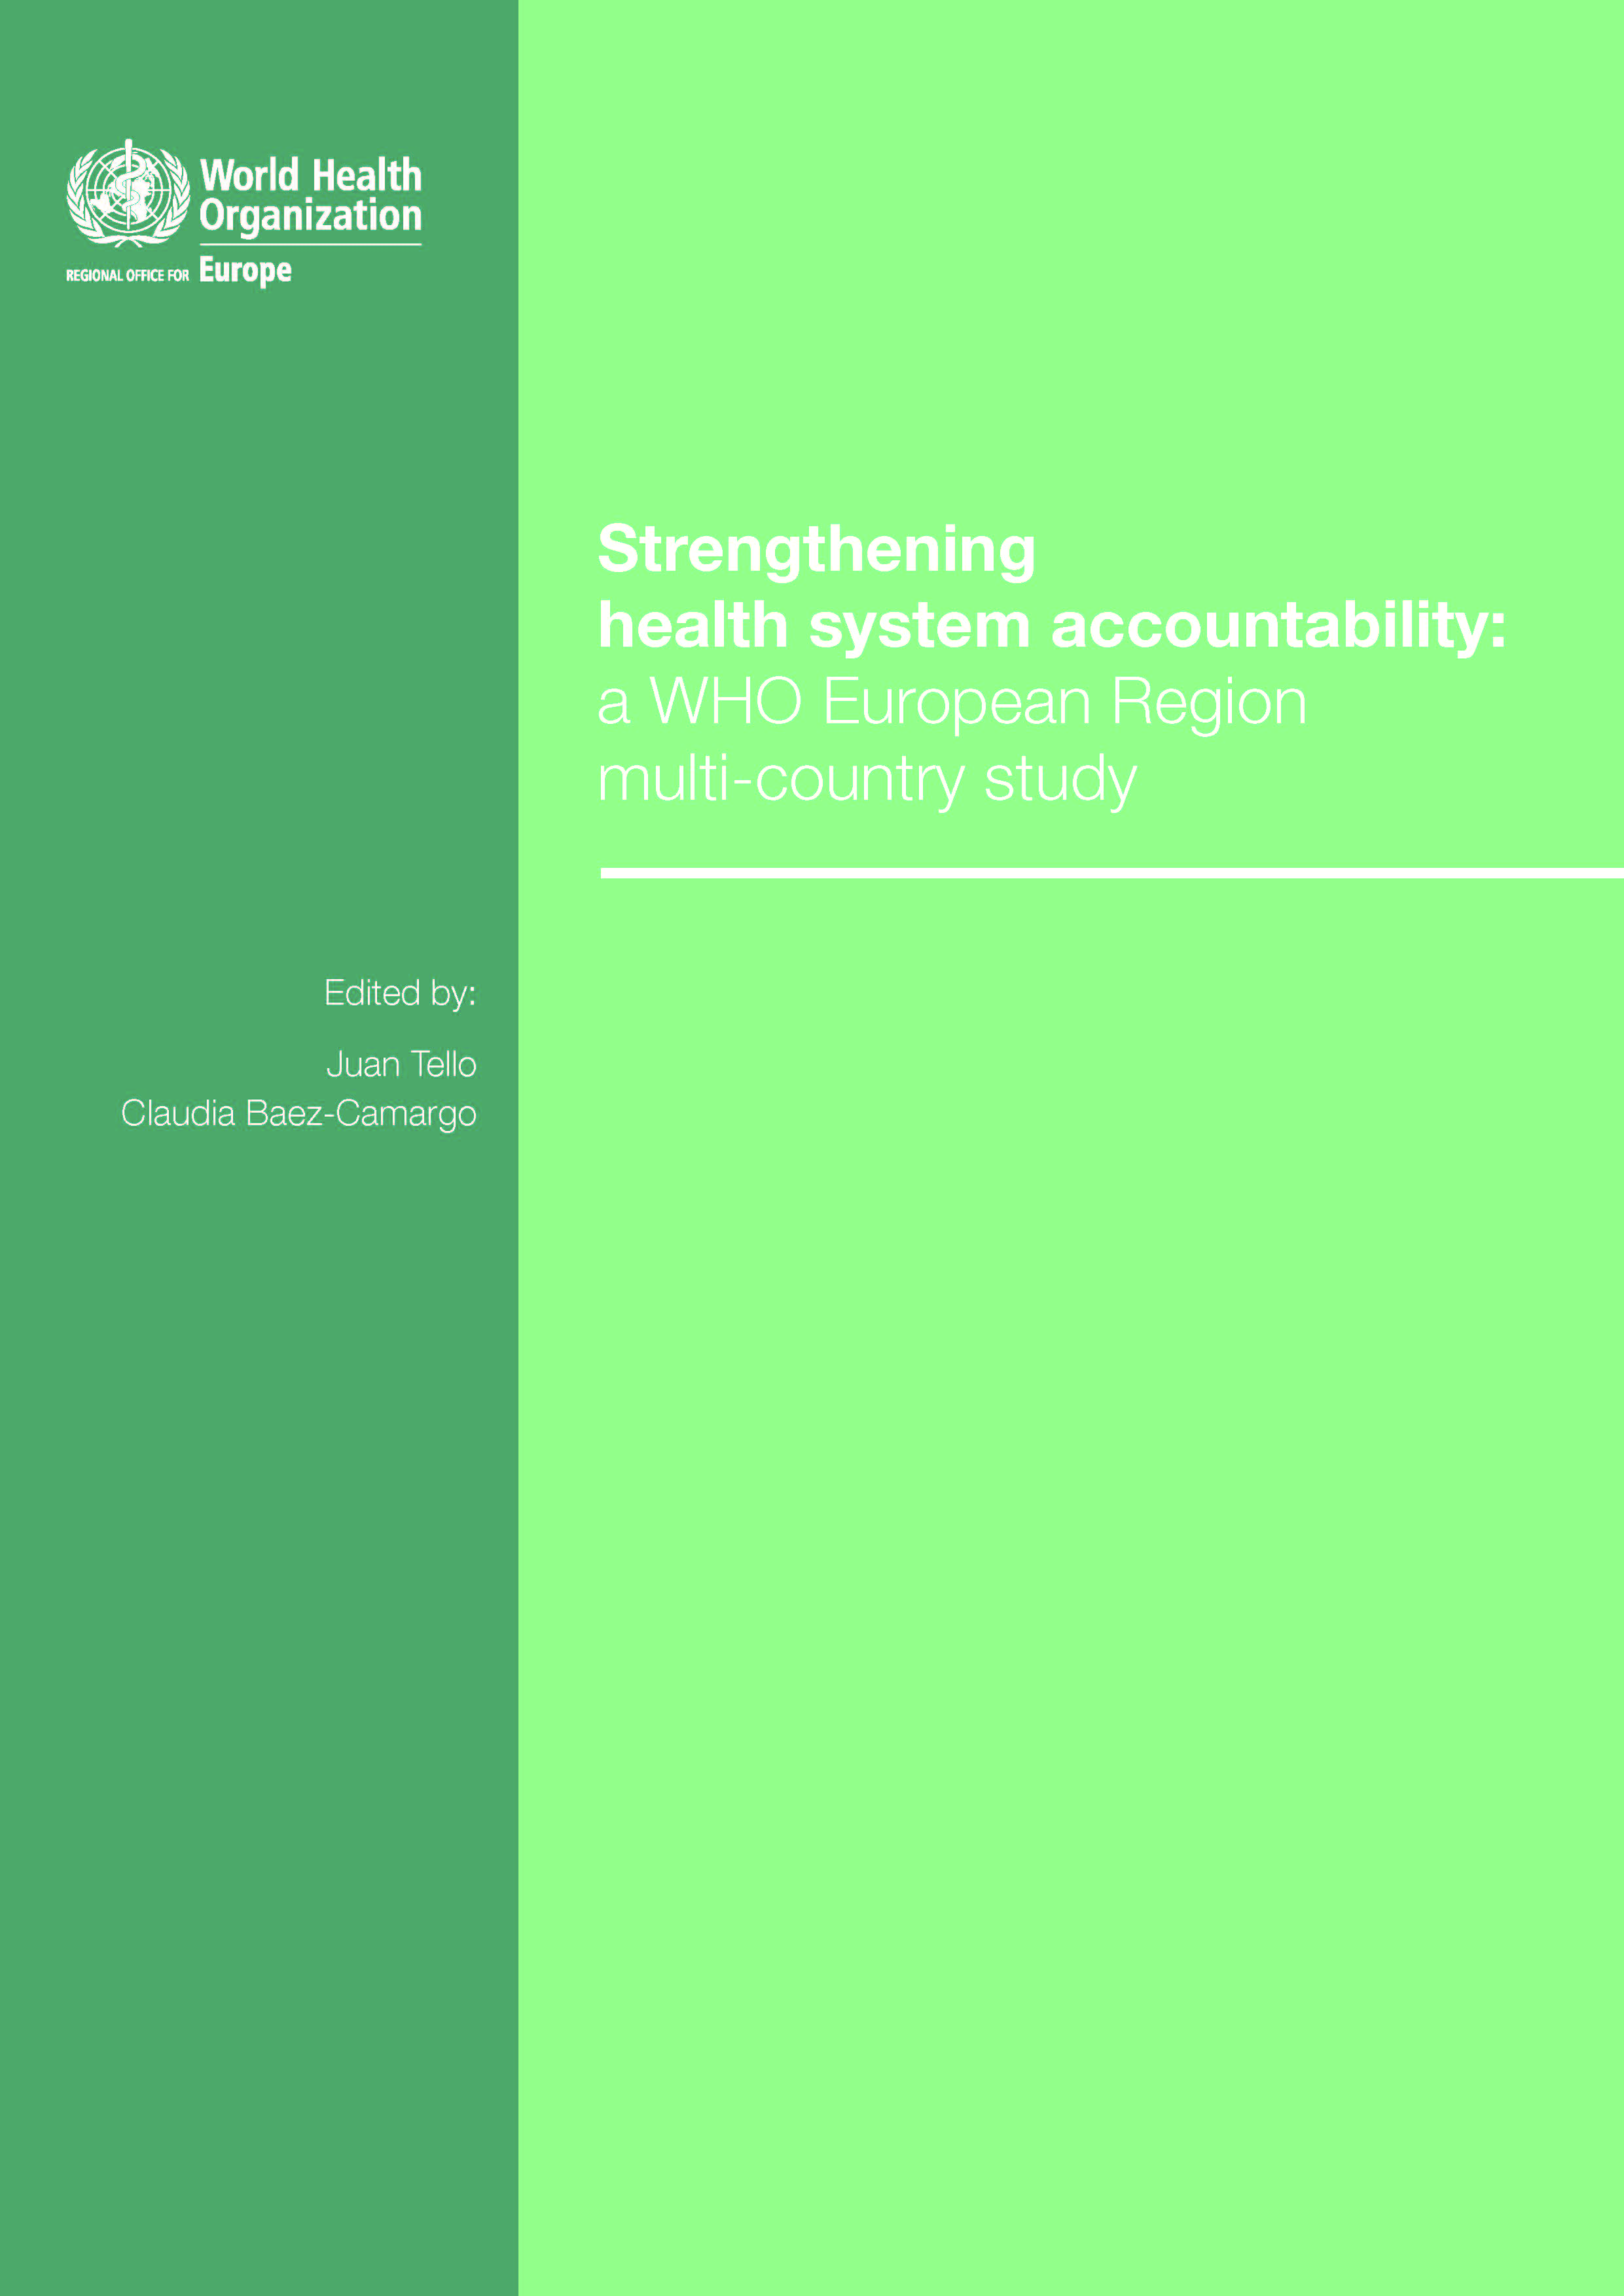 Cover of Strengthening Health System Accountability report